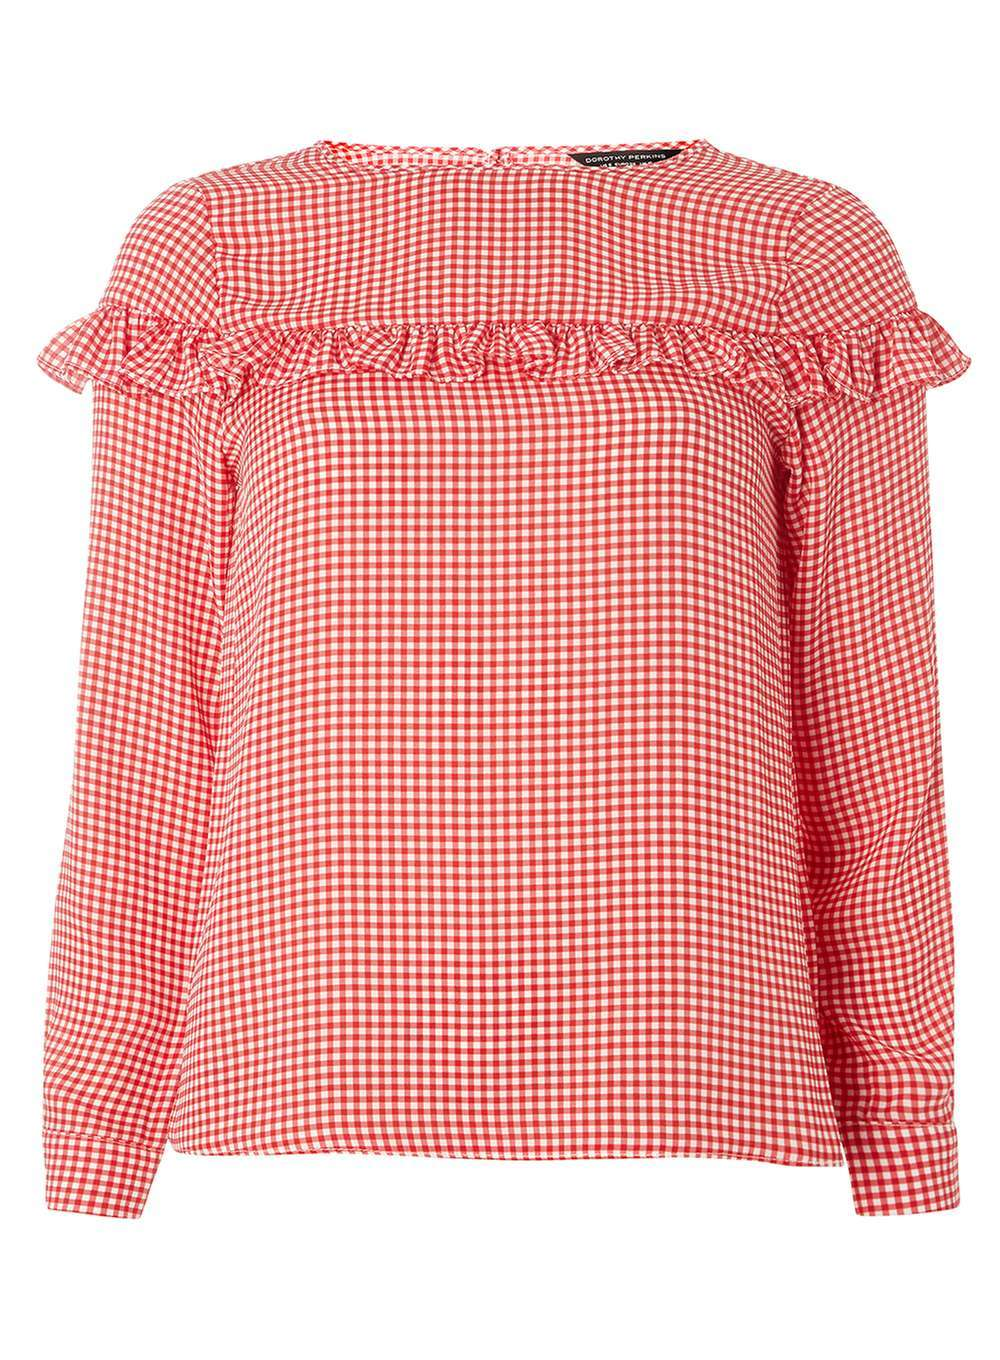 Womens Red Gingham Blouse Red - neckline: round neck; pattern: checked/gingham; style: blouse; predominant colour: true red; occasions: casual, creative work; length: standard; fibres: polyester/polyamide - 100%; fit: body skimming; sleeve length: long sleeve; sleeve style: standard; bust detail: tiers/frills/bulky drapes/pleats; pattern type: fabric; texture group: other - light to midweight; season: a/w 2016